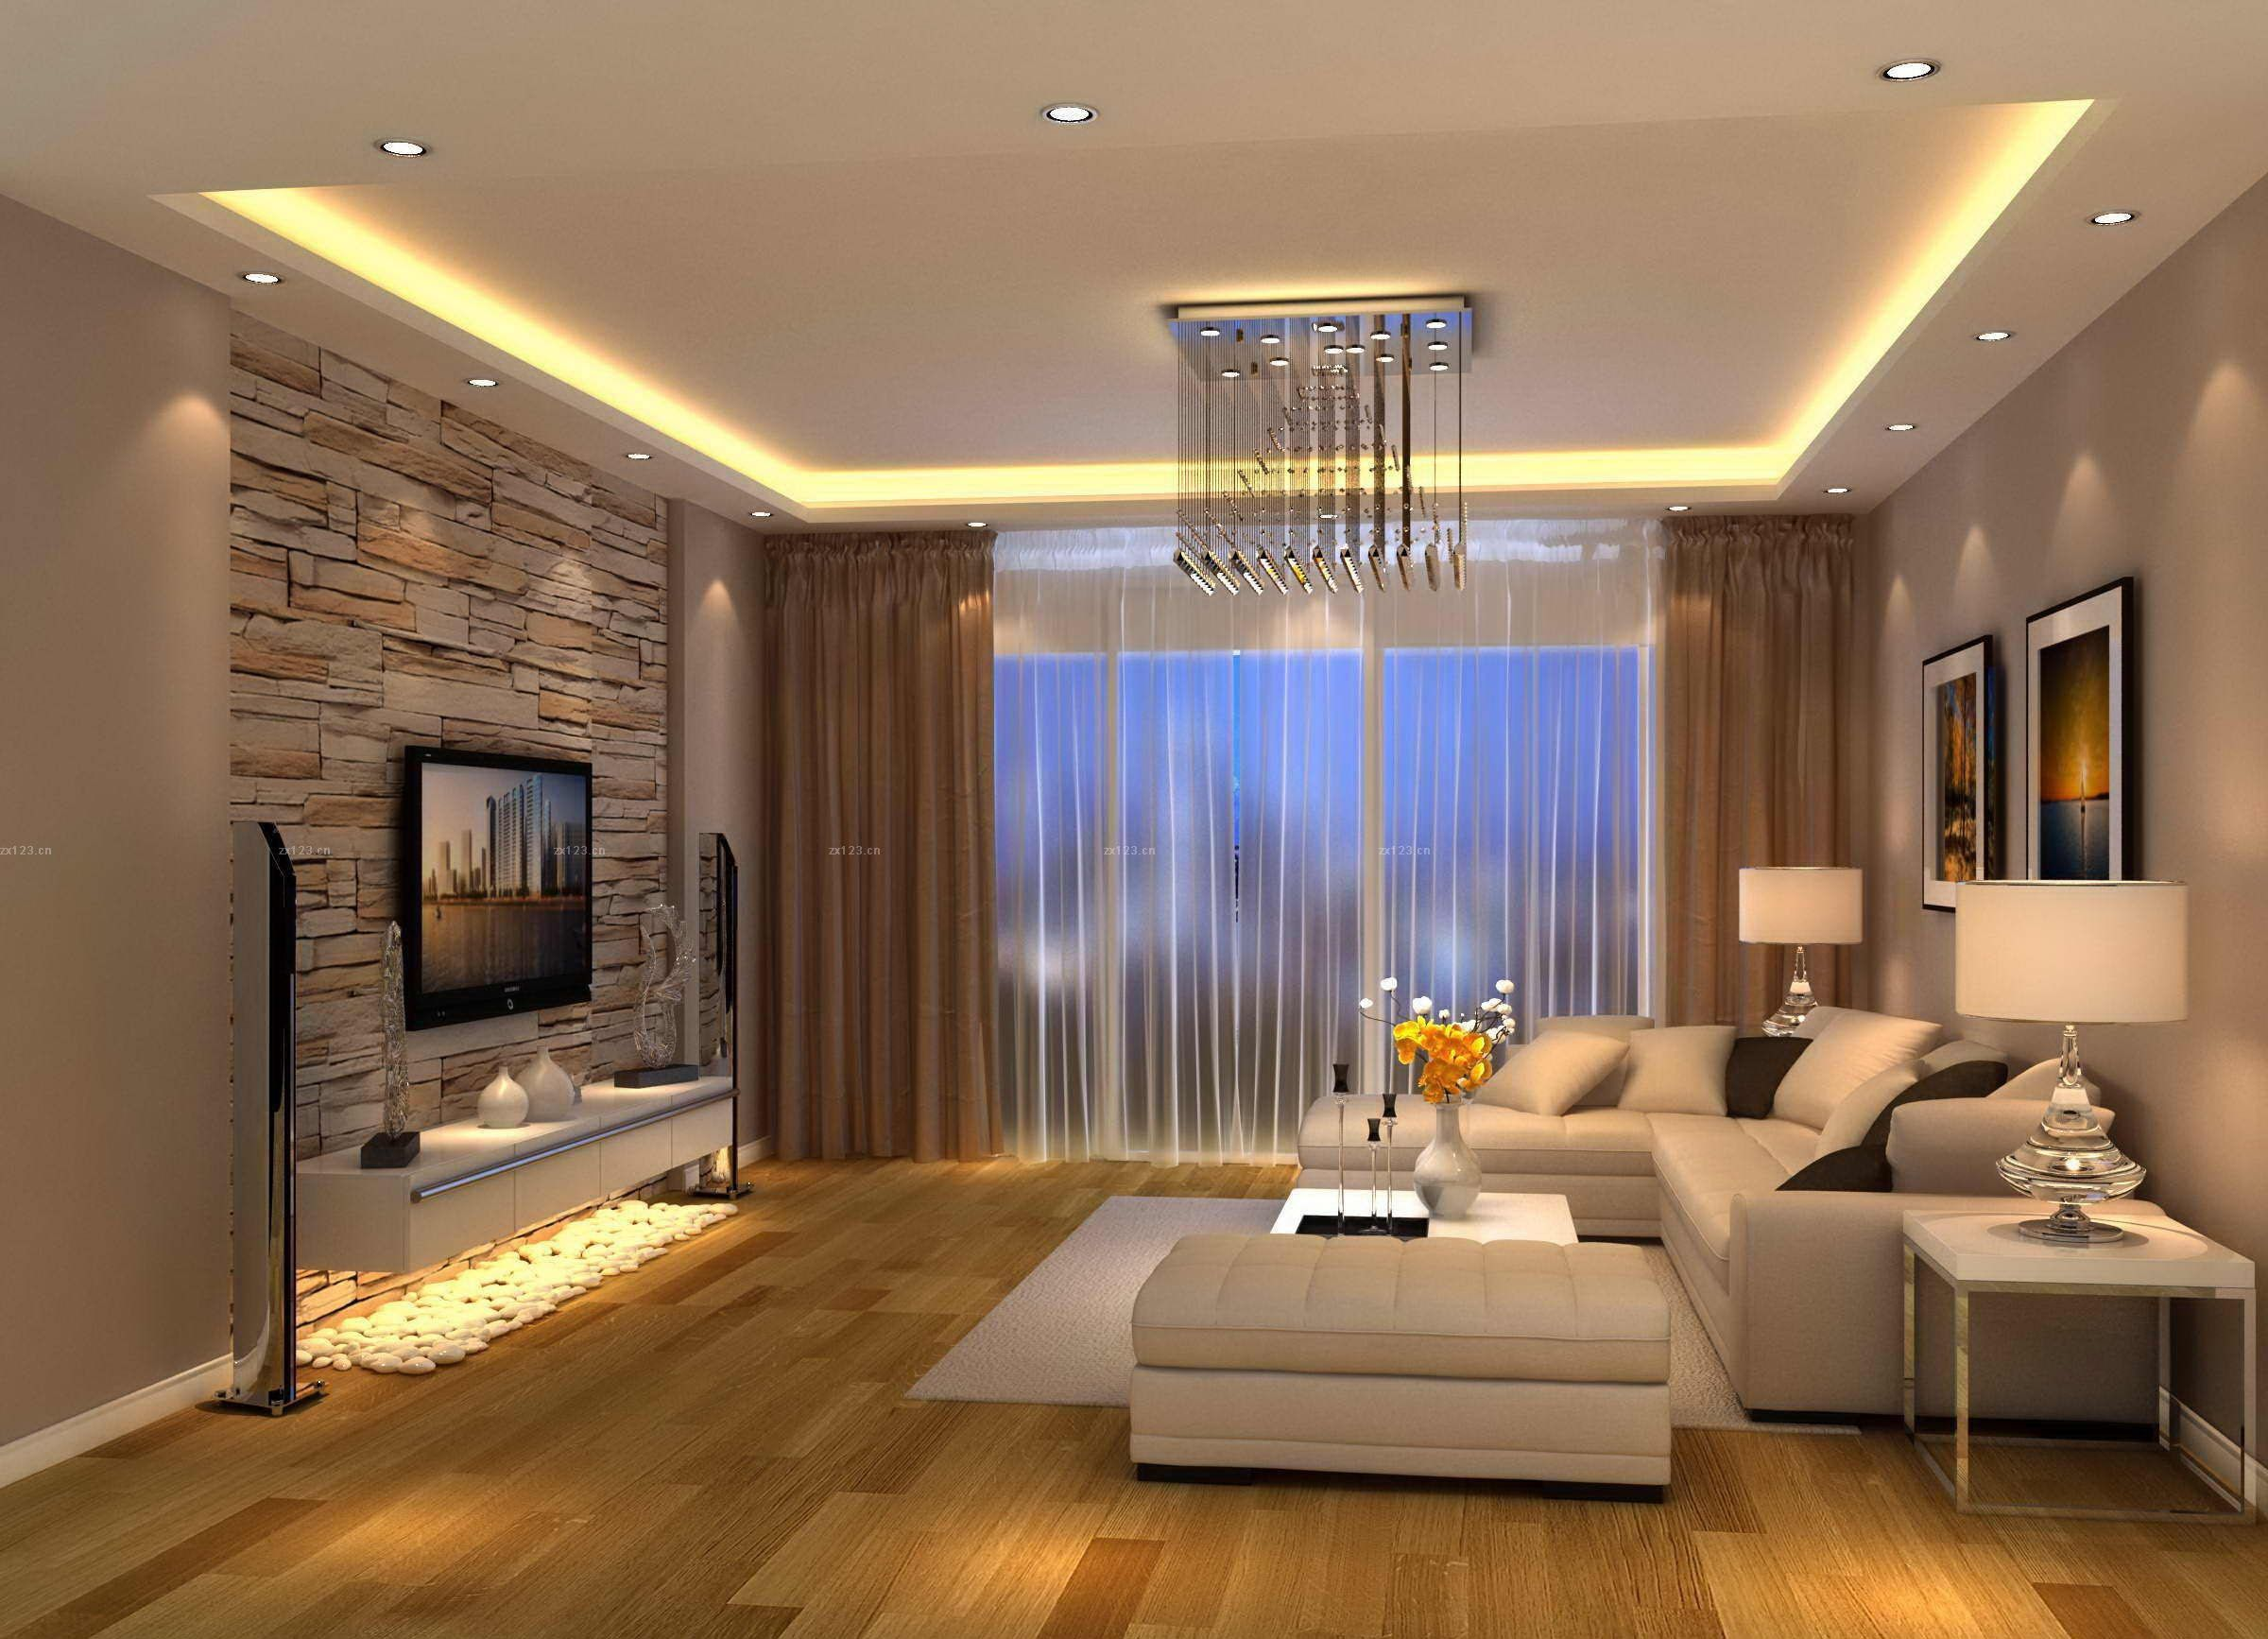 47 Ideas Living Room Design Modern 2017 | Ceiling design ...